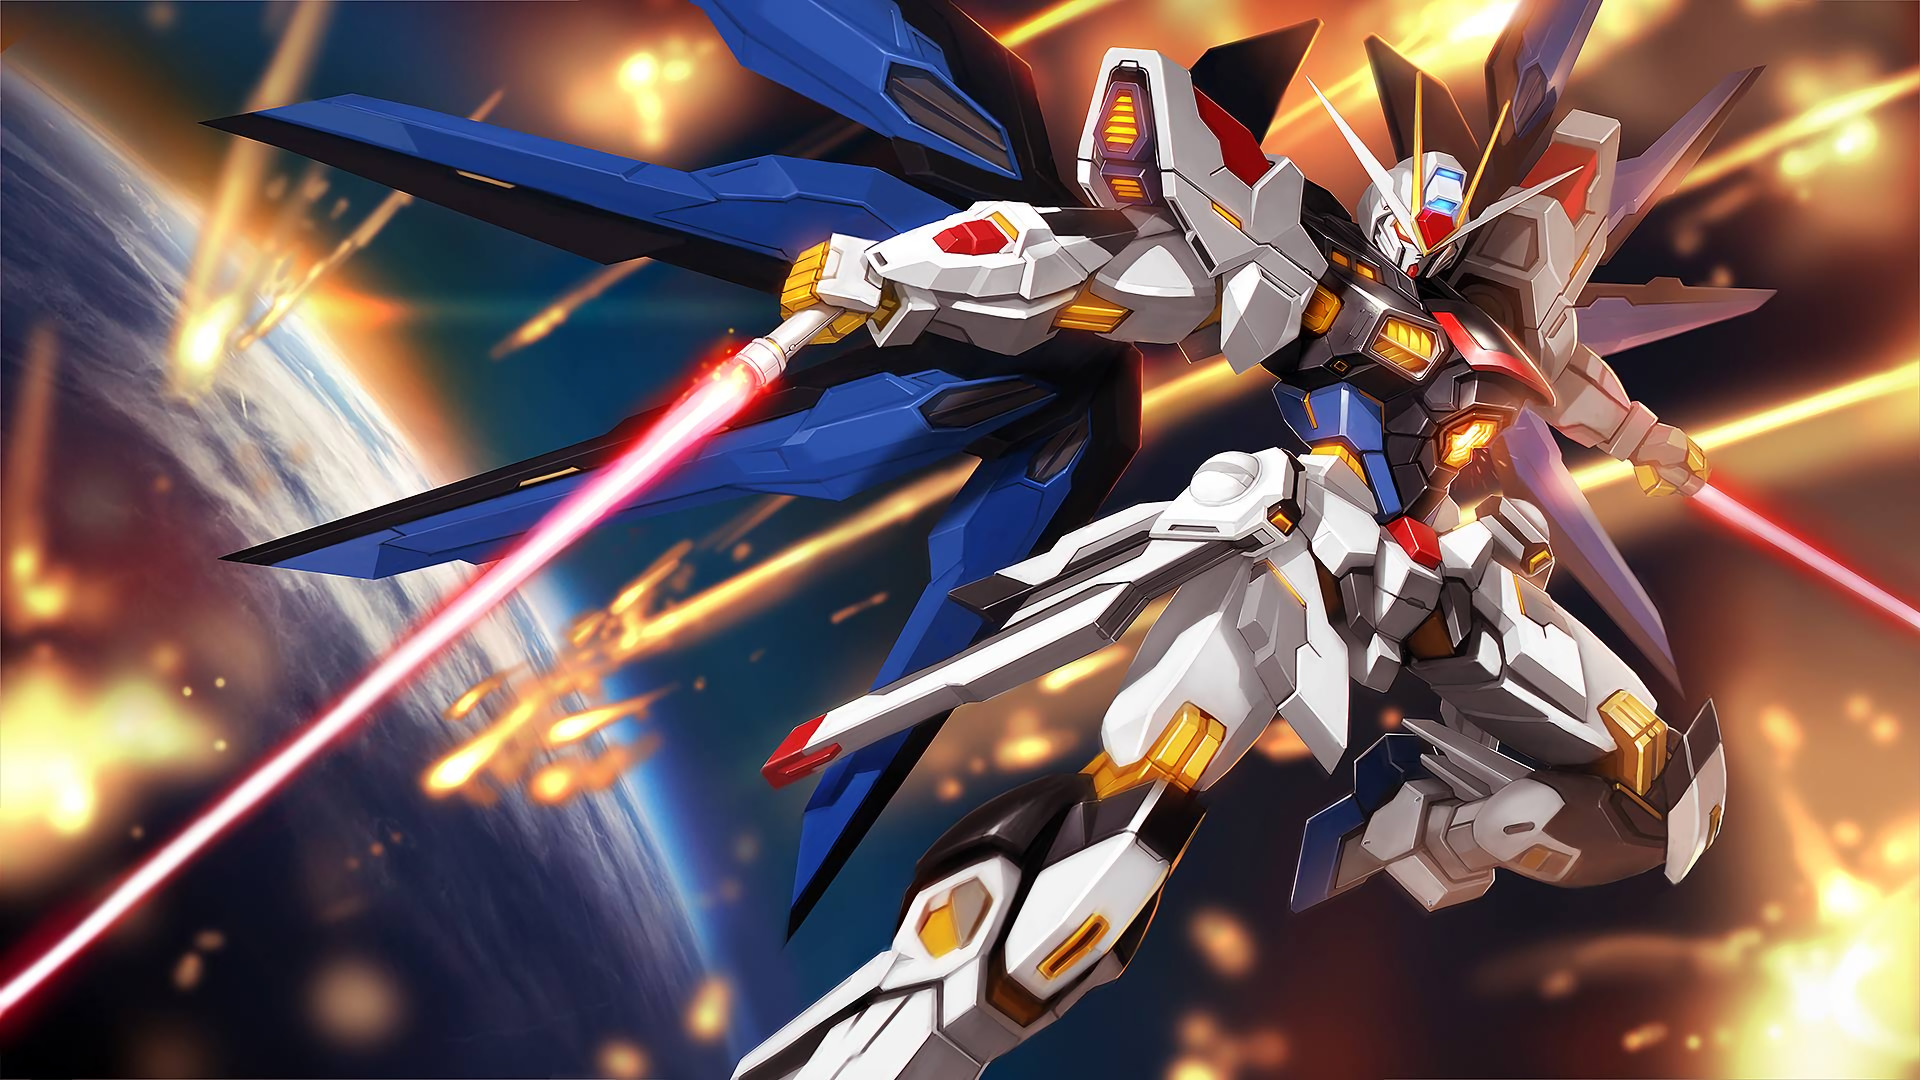 1920x1080 Anime - Mobile Suit Gundam Seed Destiny Wallpaper